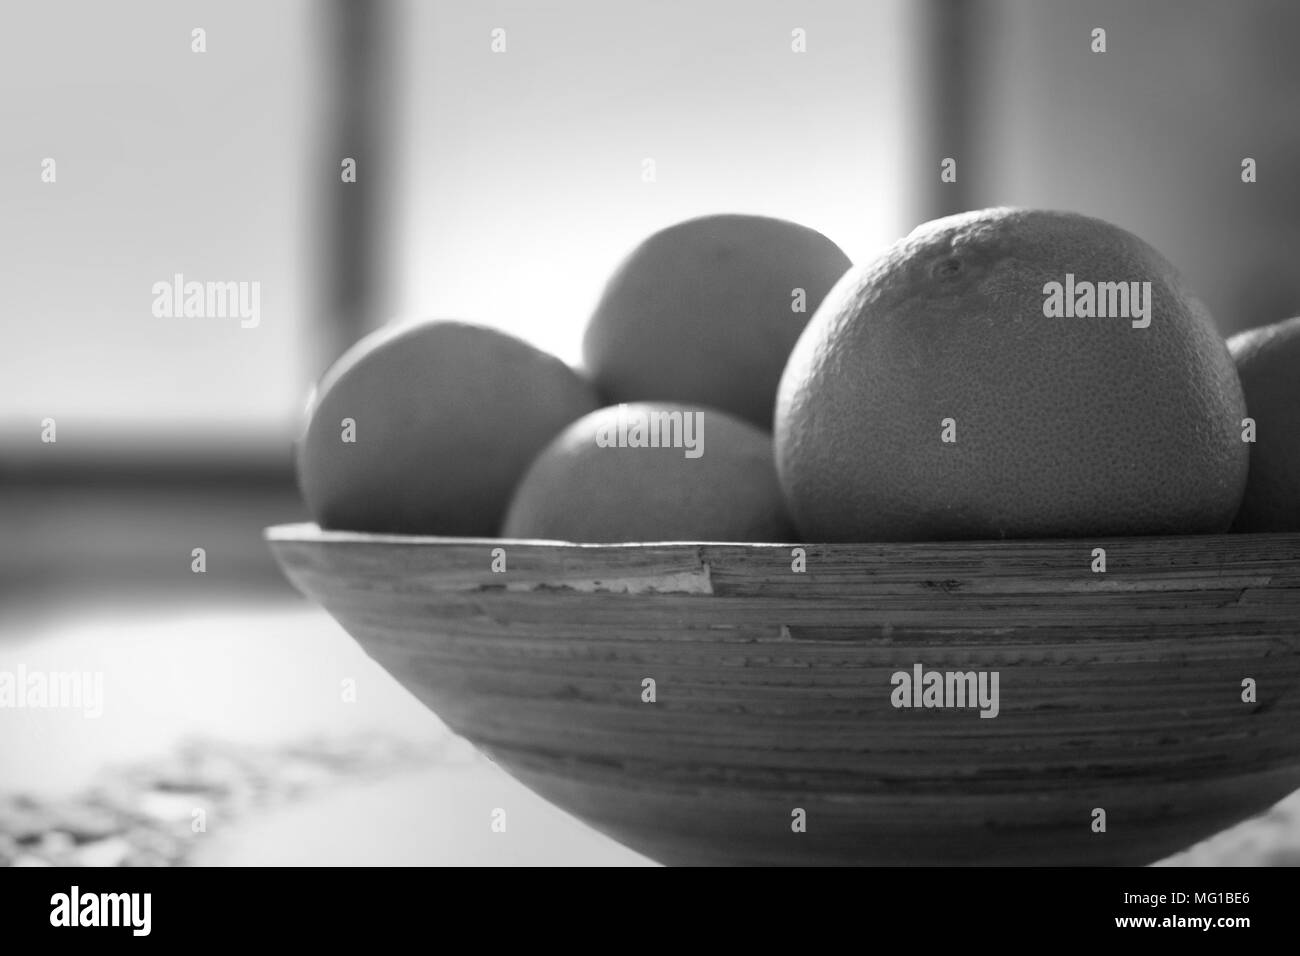 Close up of oranges with blurred background in black and white. Stock Photo